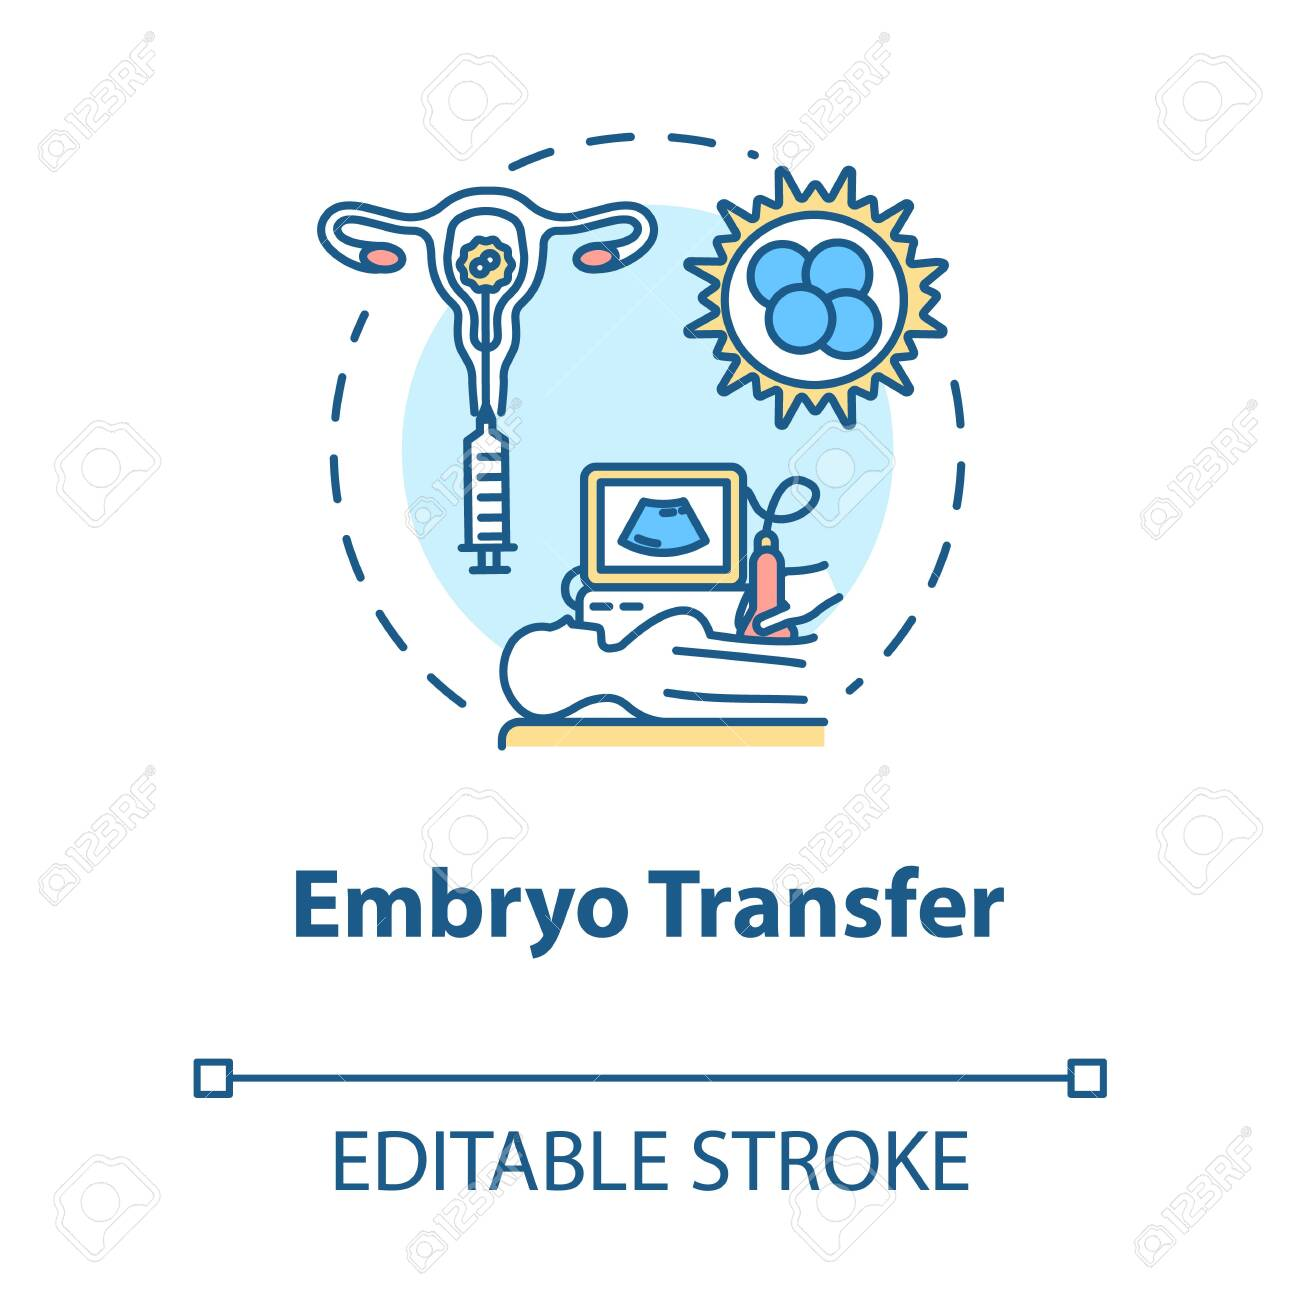 Embryo transfer concept icon. Ultrasound test. Pregnancy aid. Infertility treatment. Reproductive technology idea thin line illustration. Vector isolated outline RGB color drawing. Editable stroke - 140699951